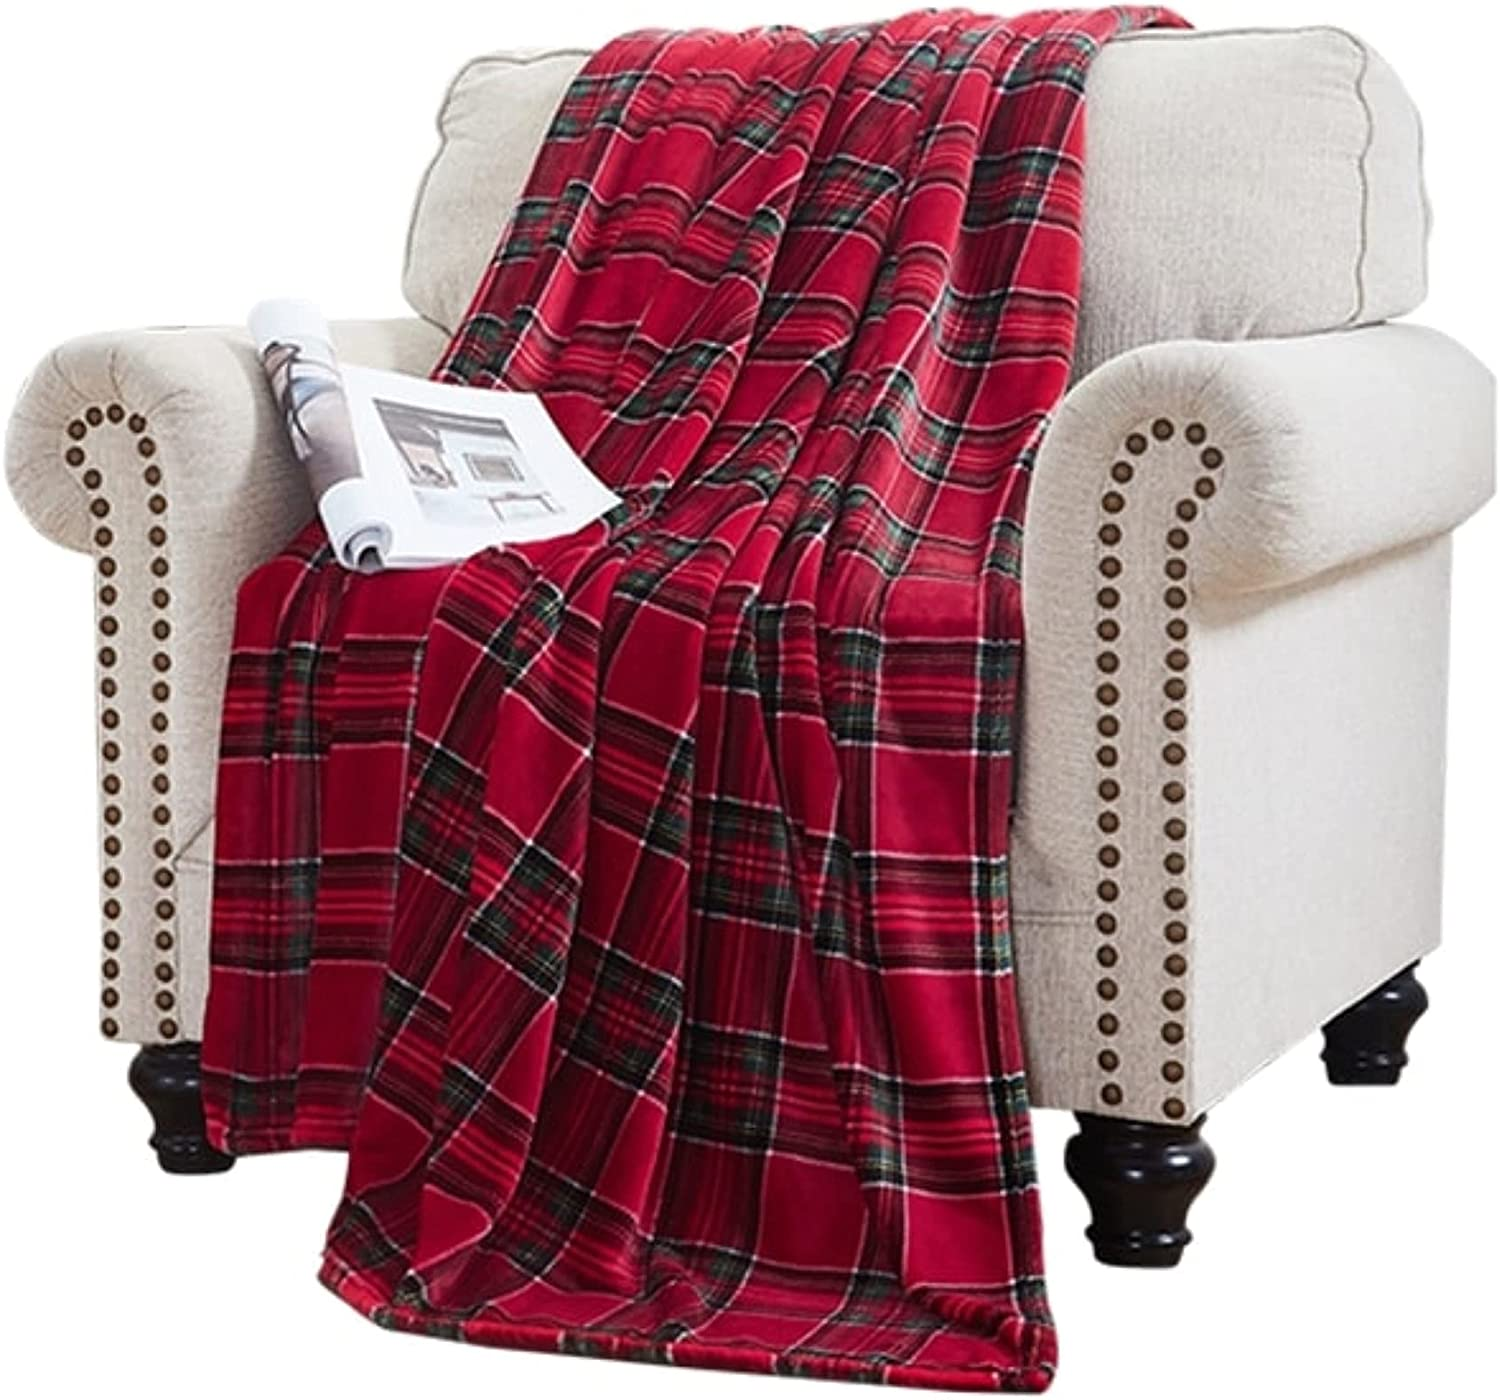 ELLE HOME Home Plush Oversized Throw Blanket - Silky Soft Flannel Fleece Soft and Cozy for Bed and Couch - Oversized Throw 60